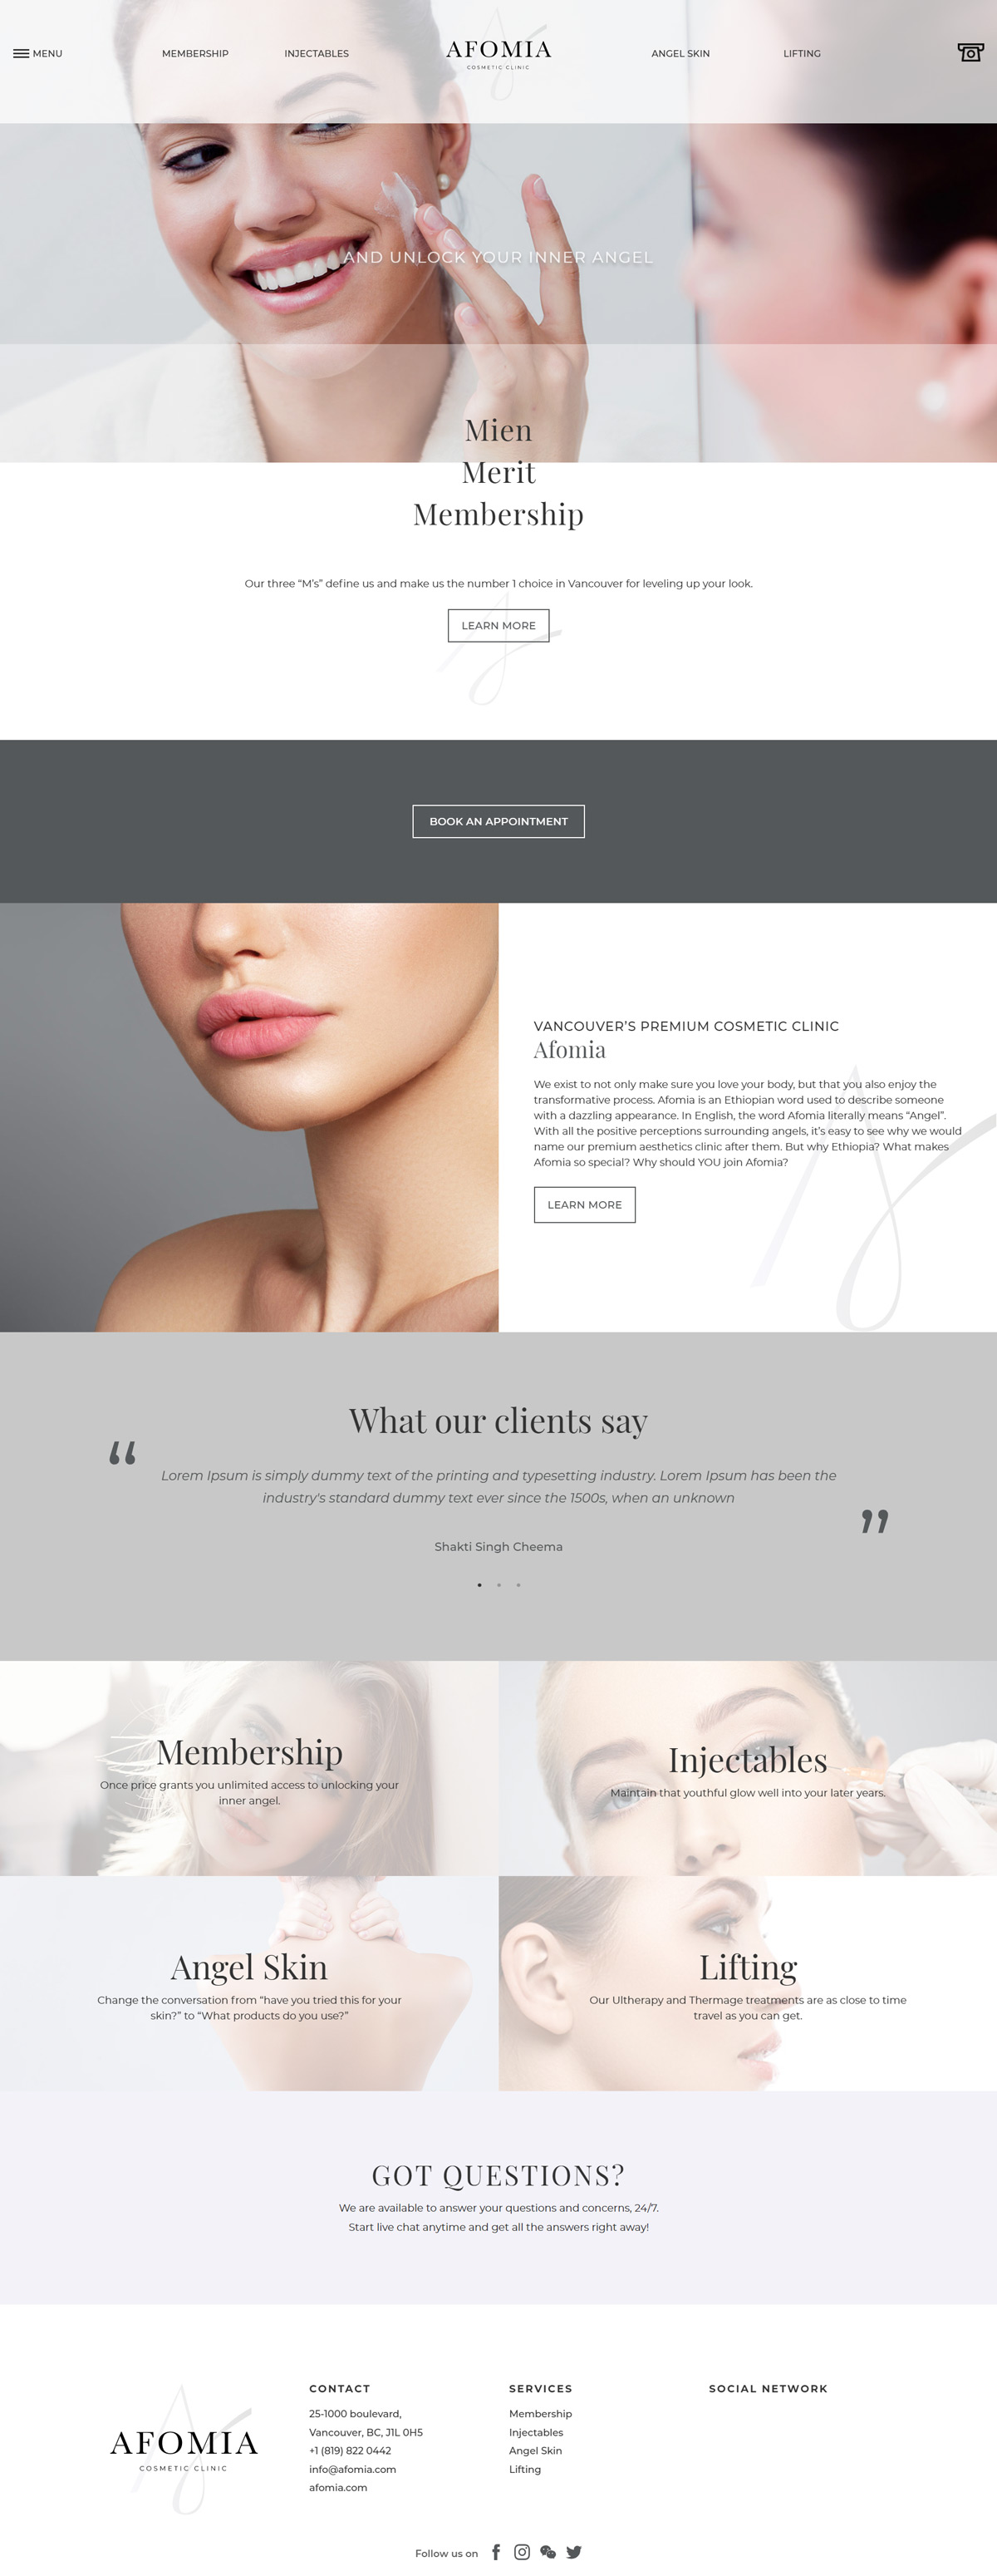 Afomia Cosmetic Clinic Website